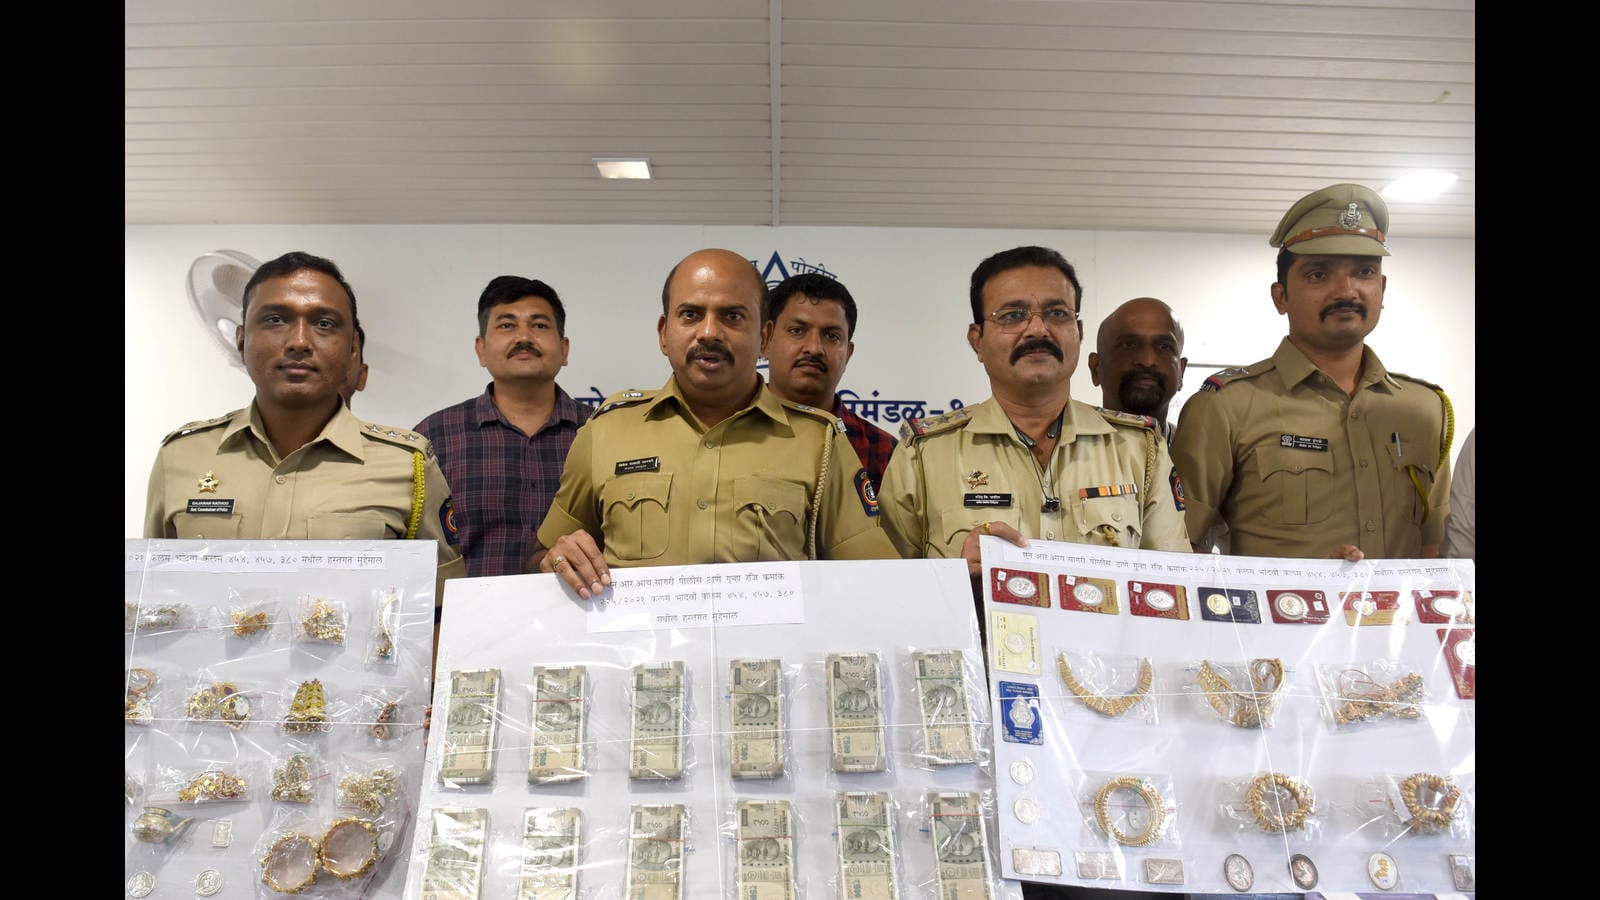 Police arrest 2 thieves for stealing homes after posing as watchmen in Navi Mumbai